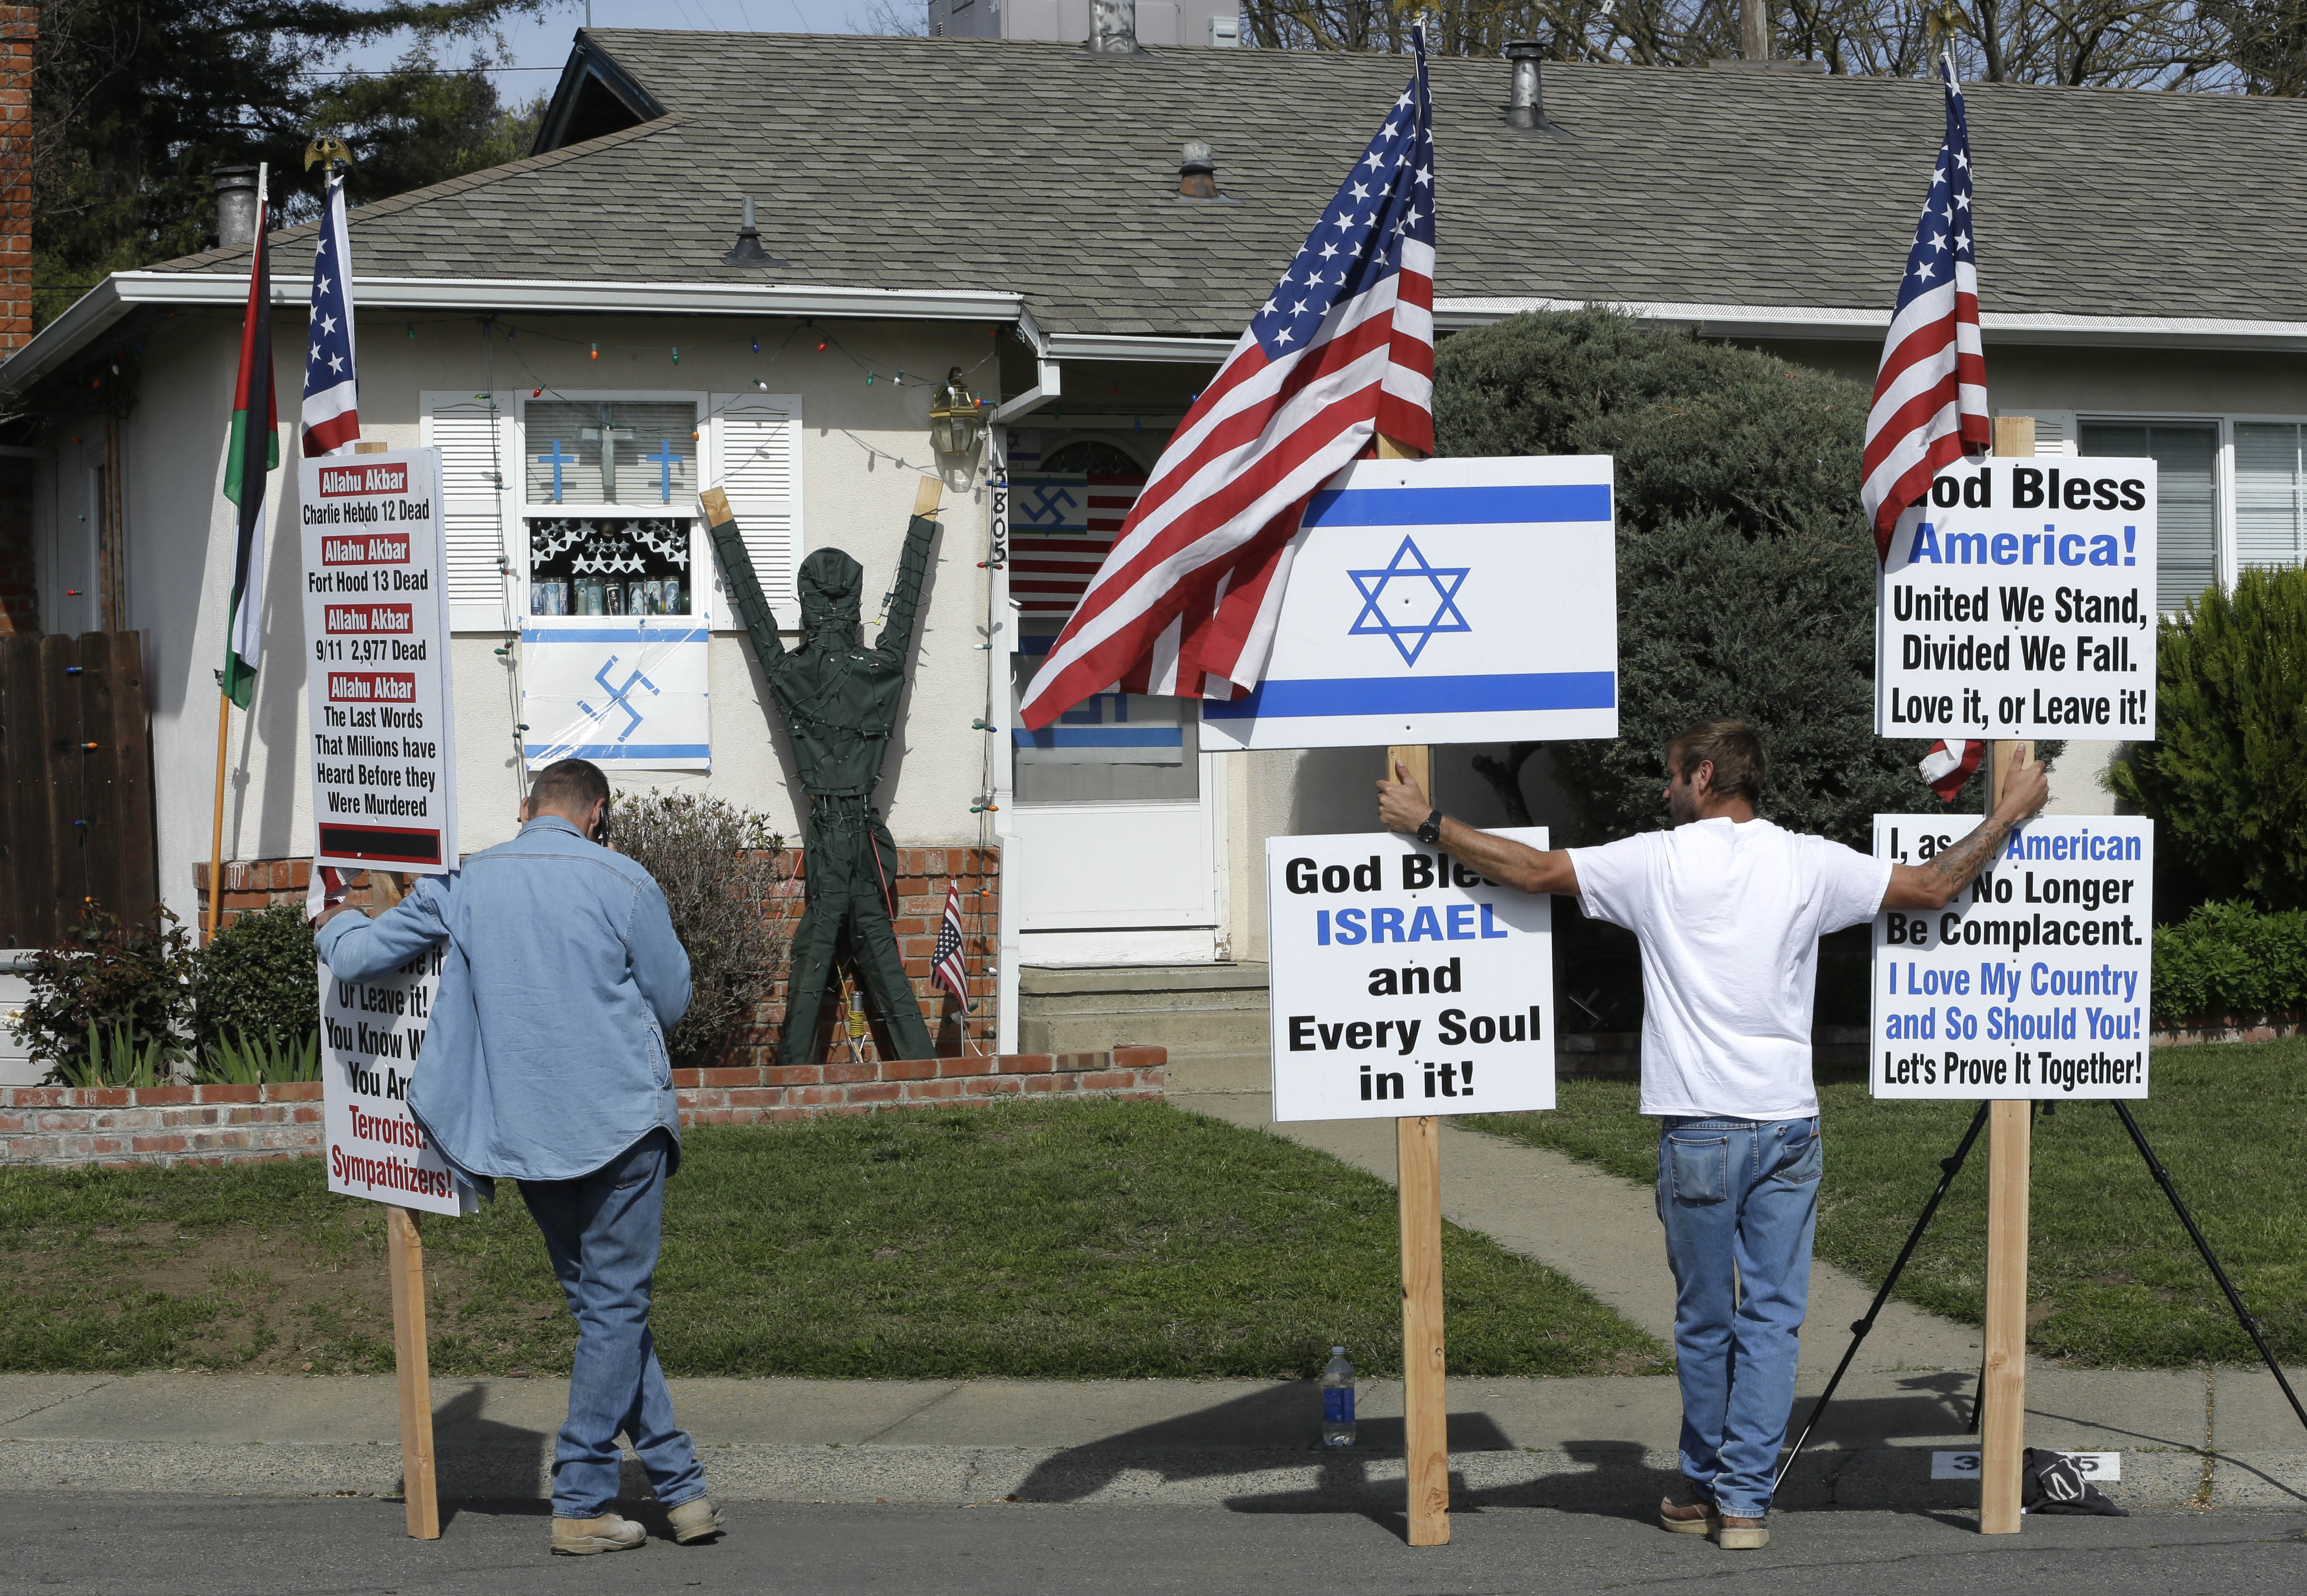 Lawmakers demand swastikas be removed from California house